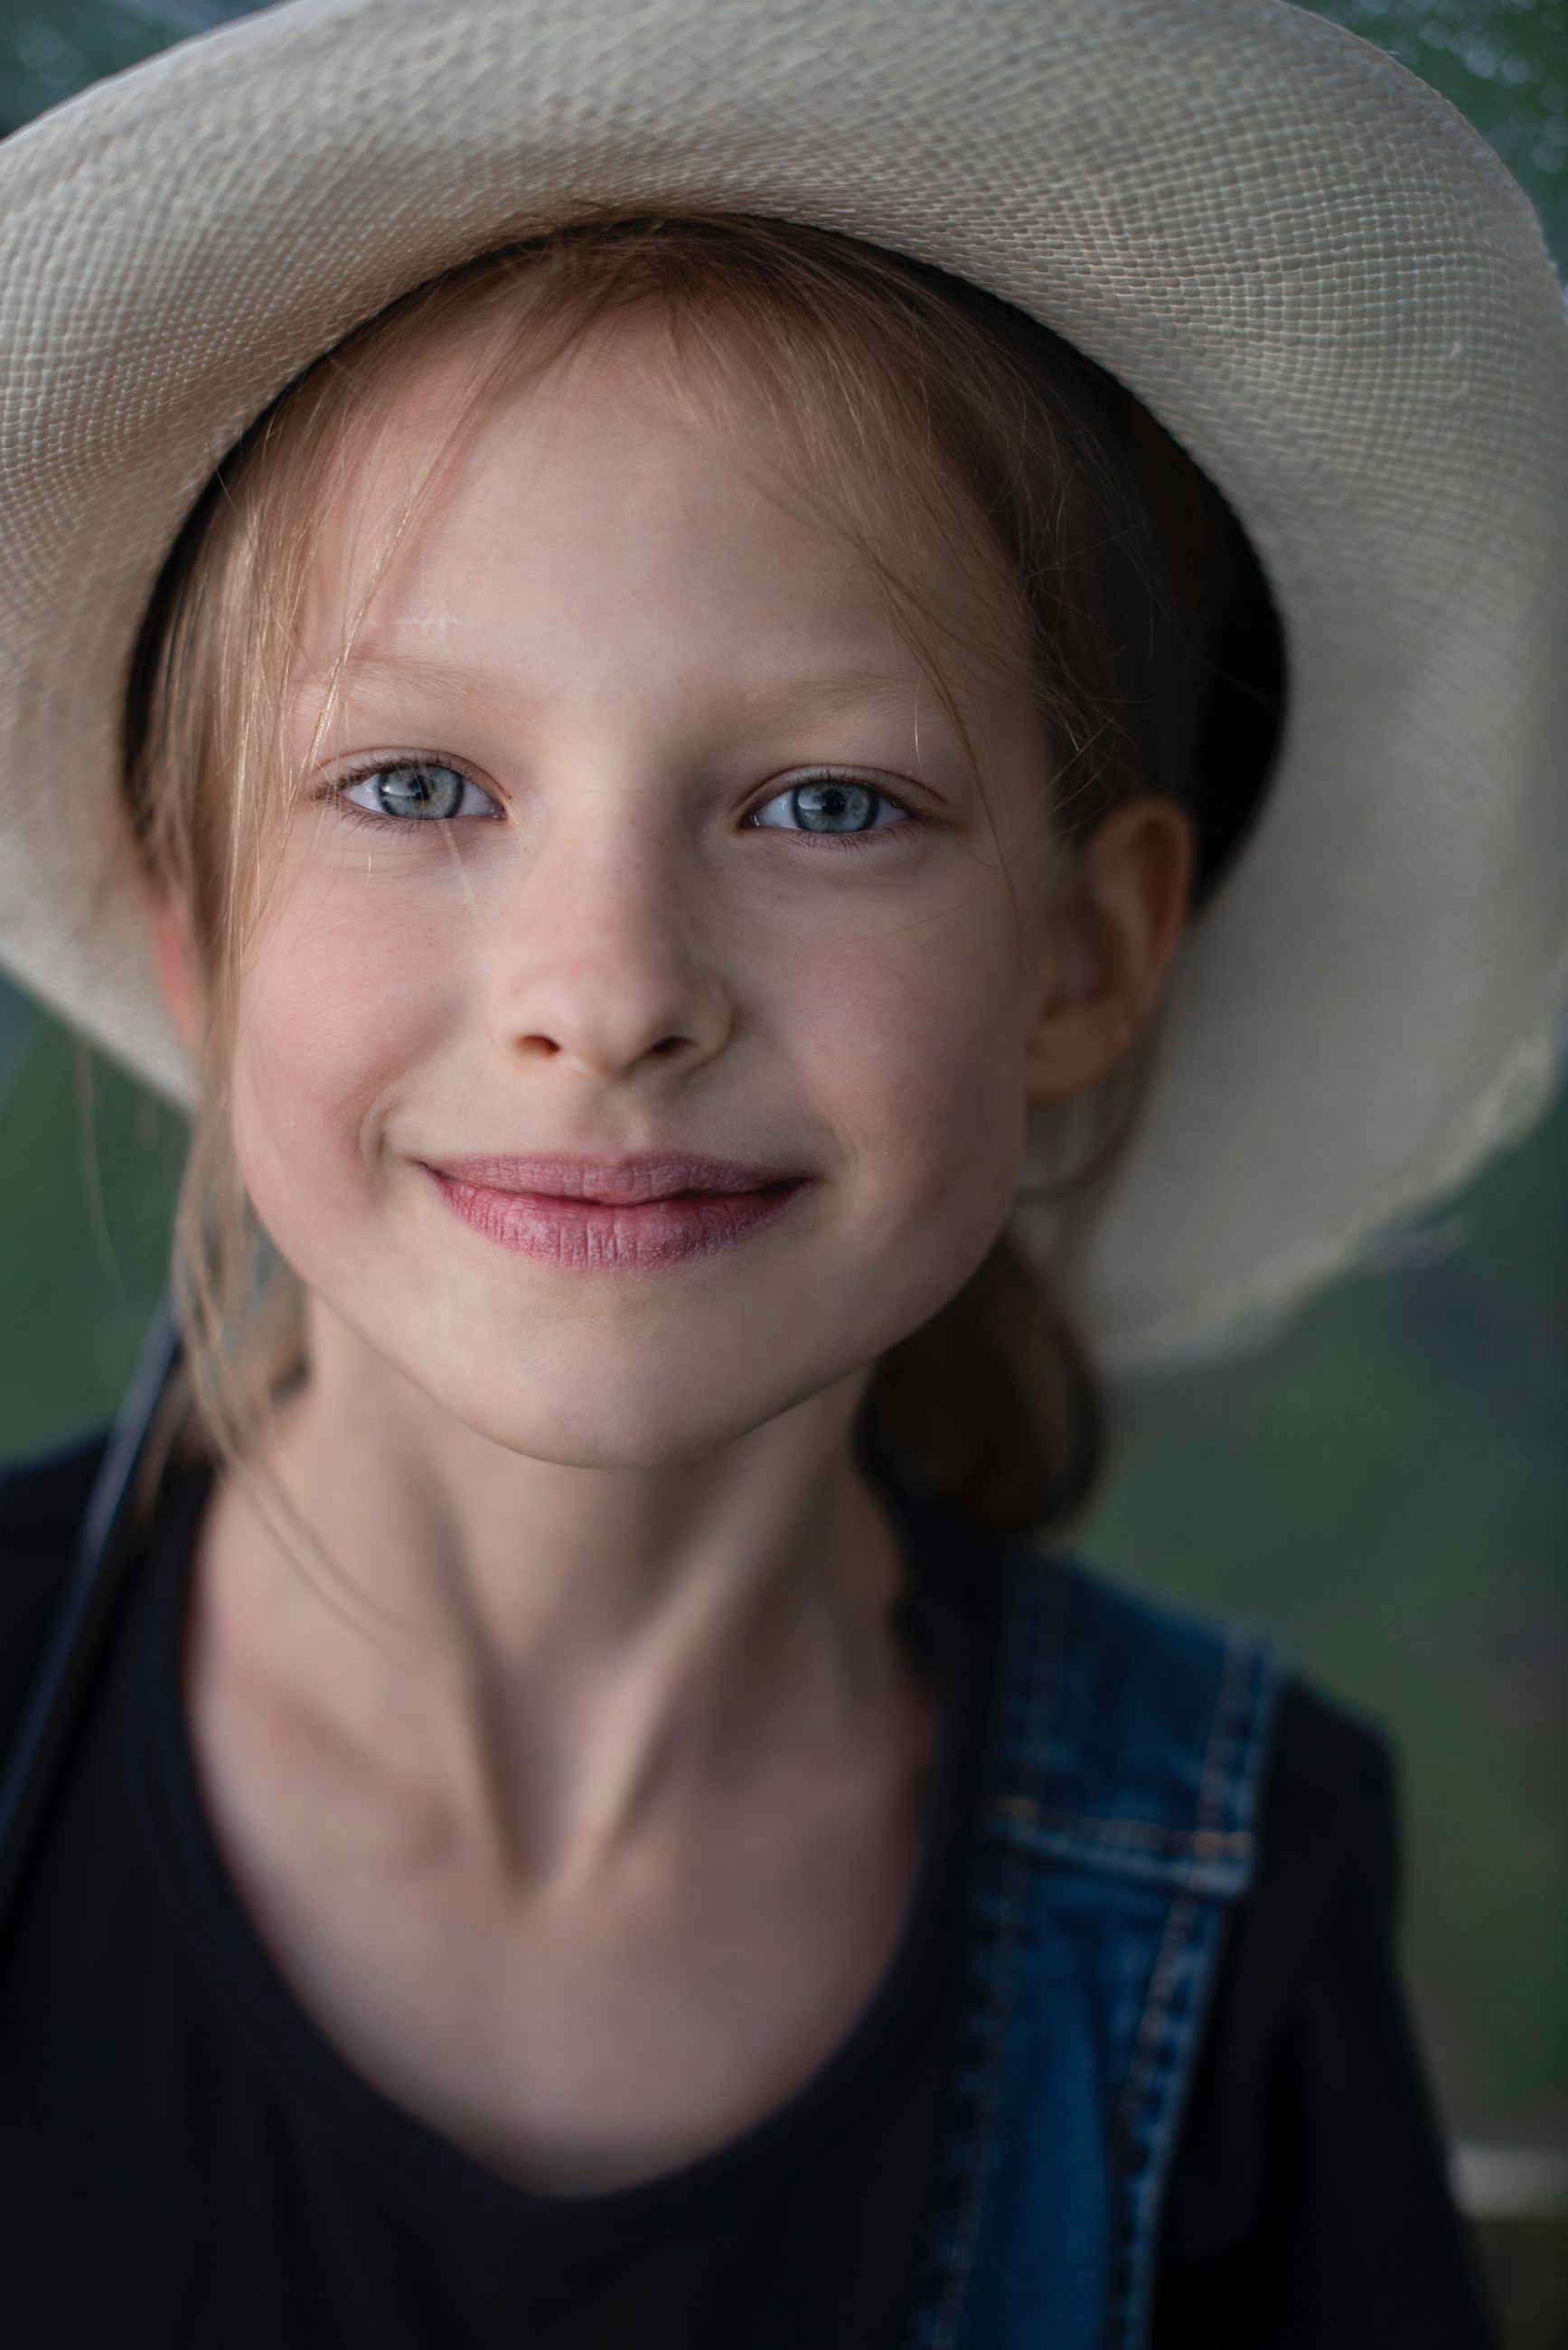 portrait, headshot, front view, one person, women, clothing, hat, looking at camera, girls, child, close-up, smiling, females, leisure activity, real people, childhood, lifestyles, innocence, human face